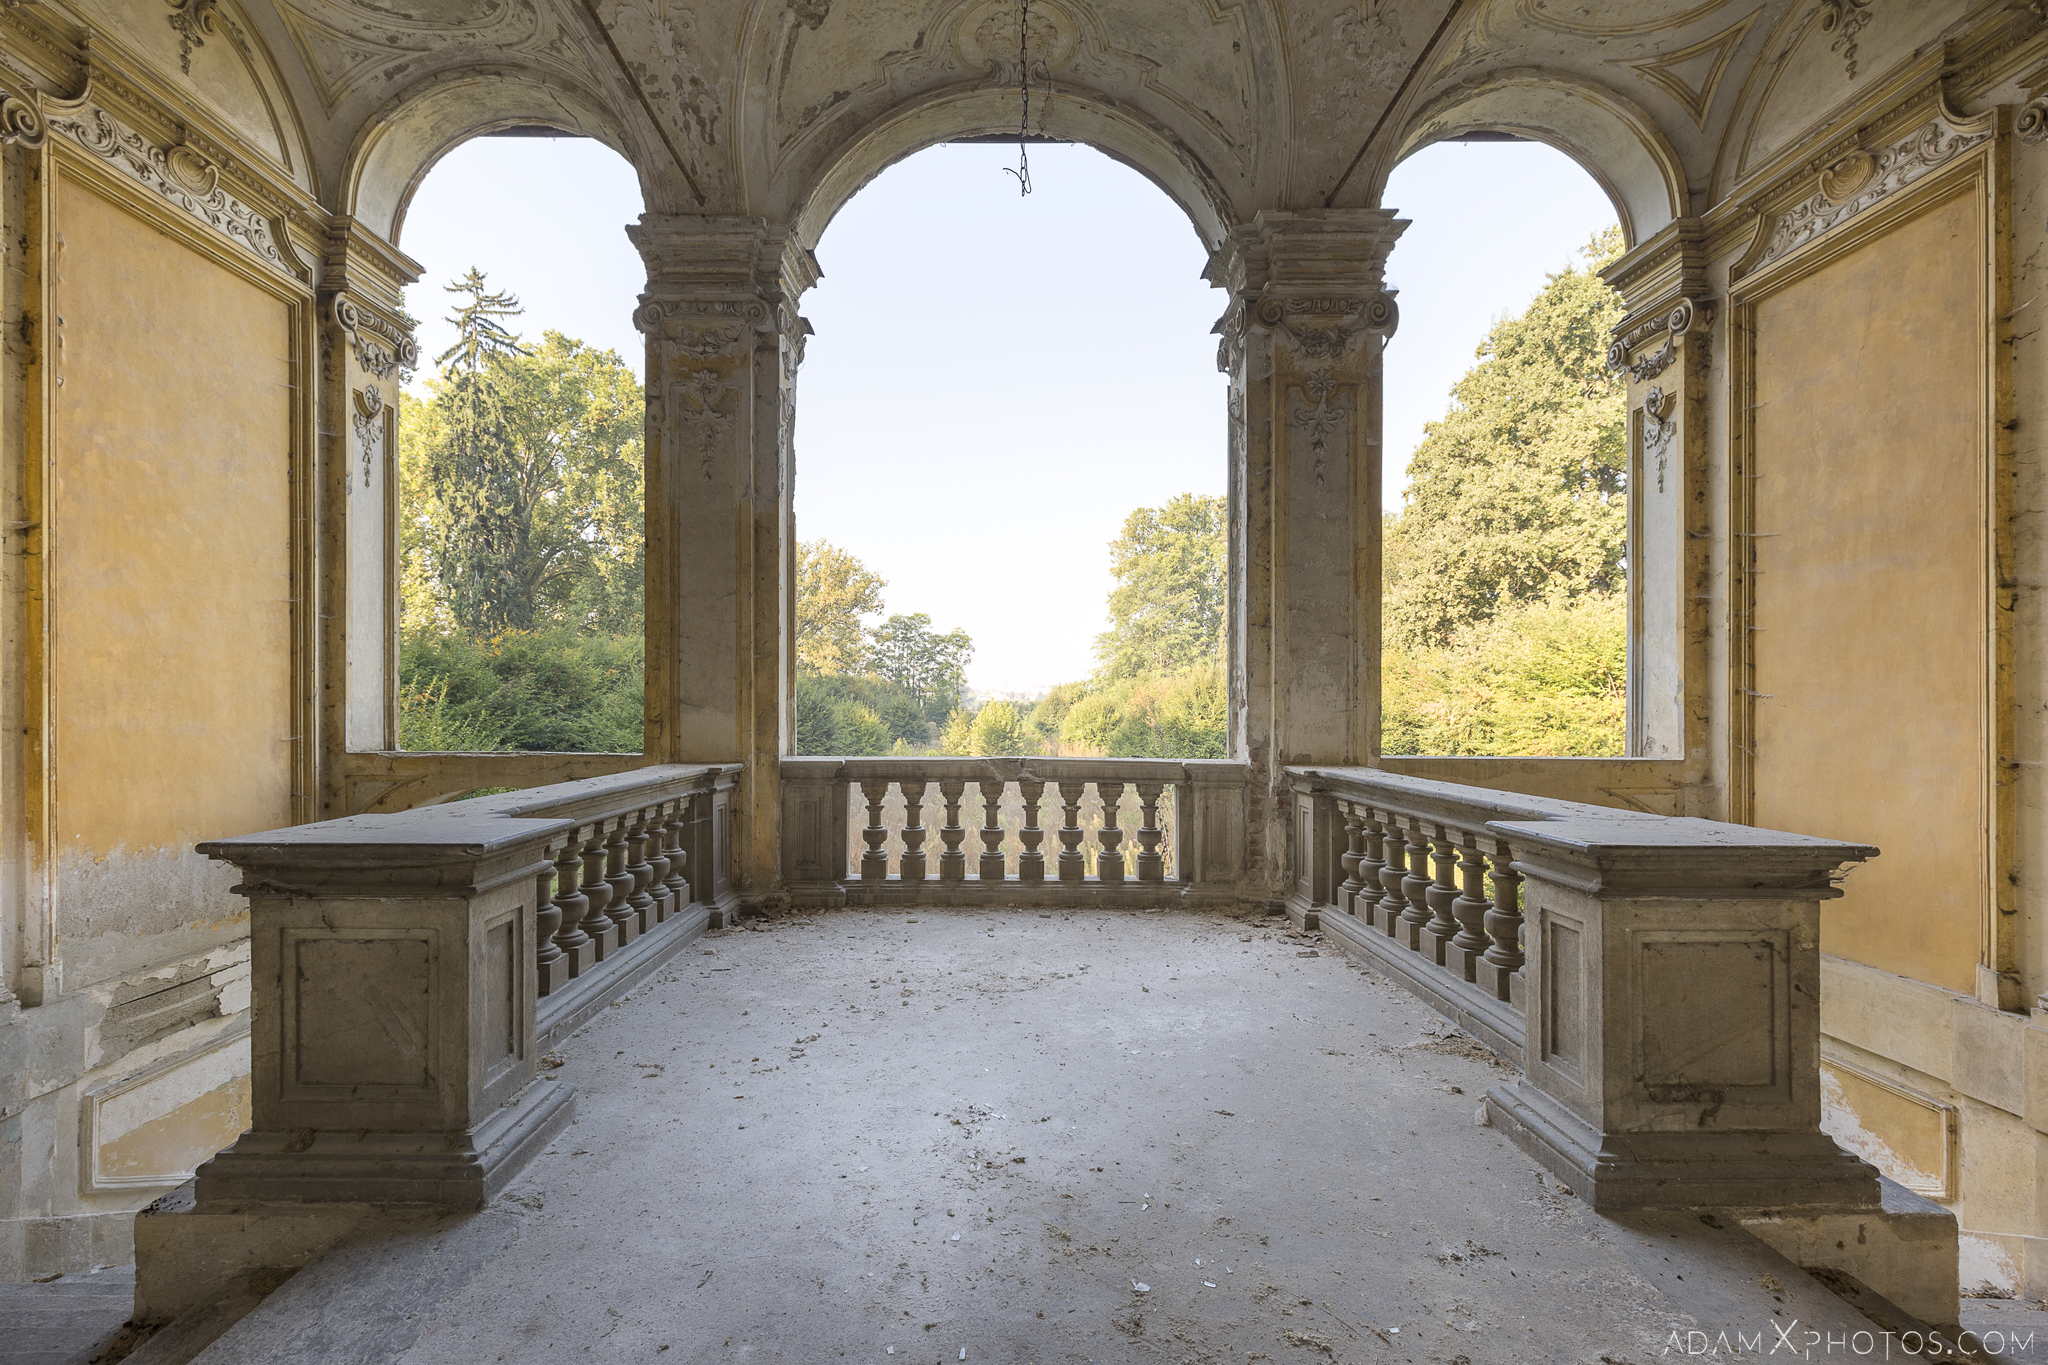 Entrance porch Palazzo L Villa Rosa Urbex Adam X Urban Exploration Italy Italia Access 2016 Abandoned Grand Ornate Neoclassical decay lost forgotten infiltration derelict location creepy haunting eerie